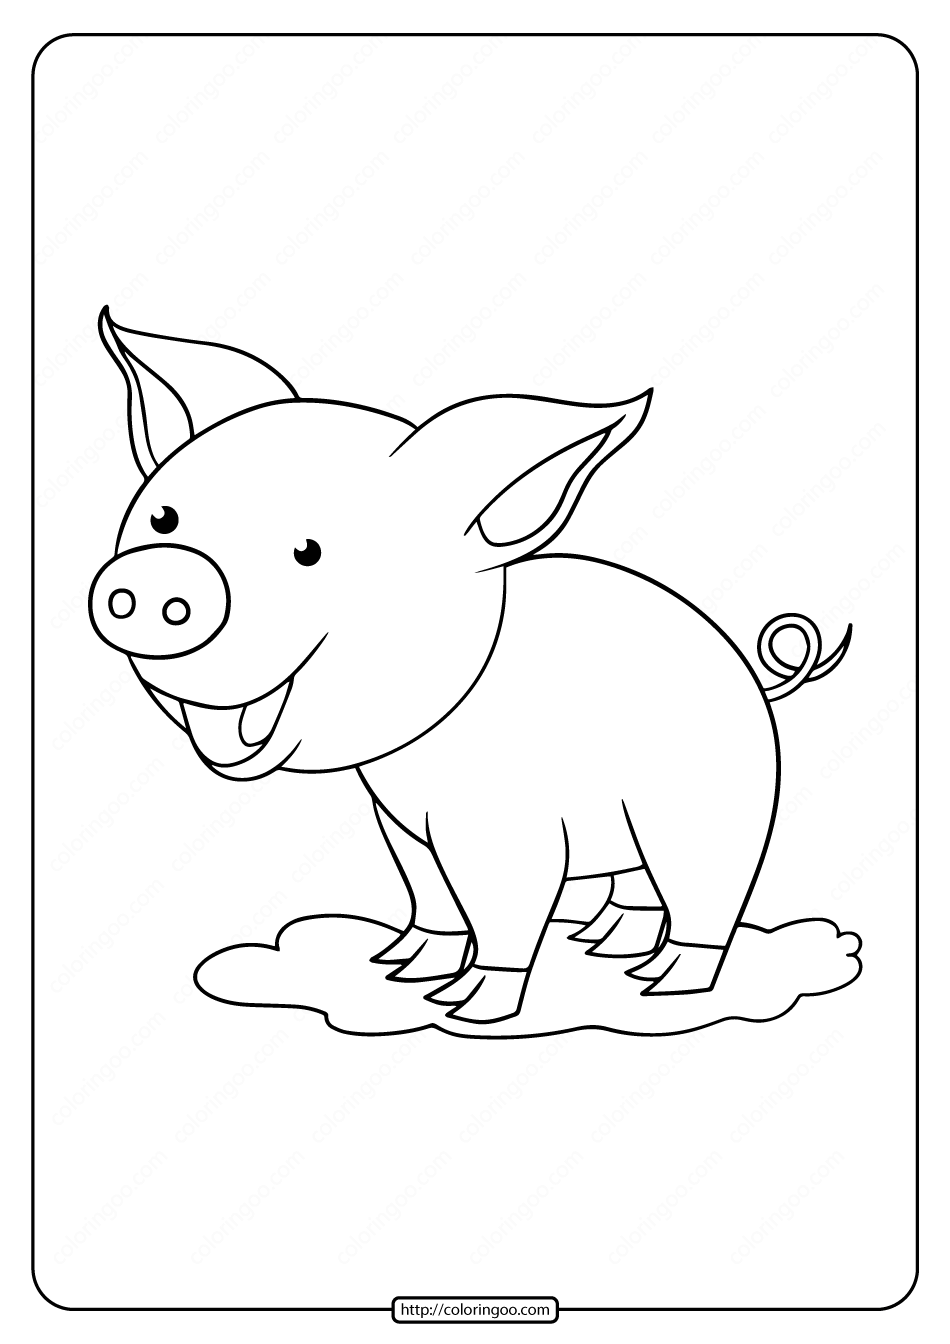 pig pictures to print printable laughing pig coloring page for kids pictures to pig print